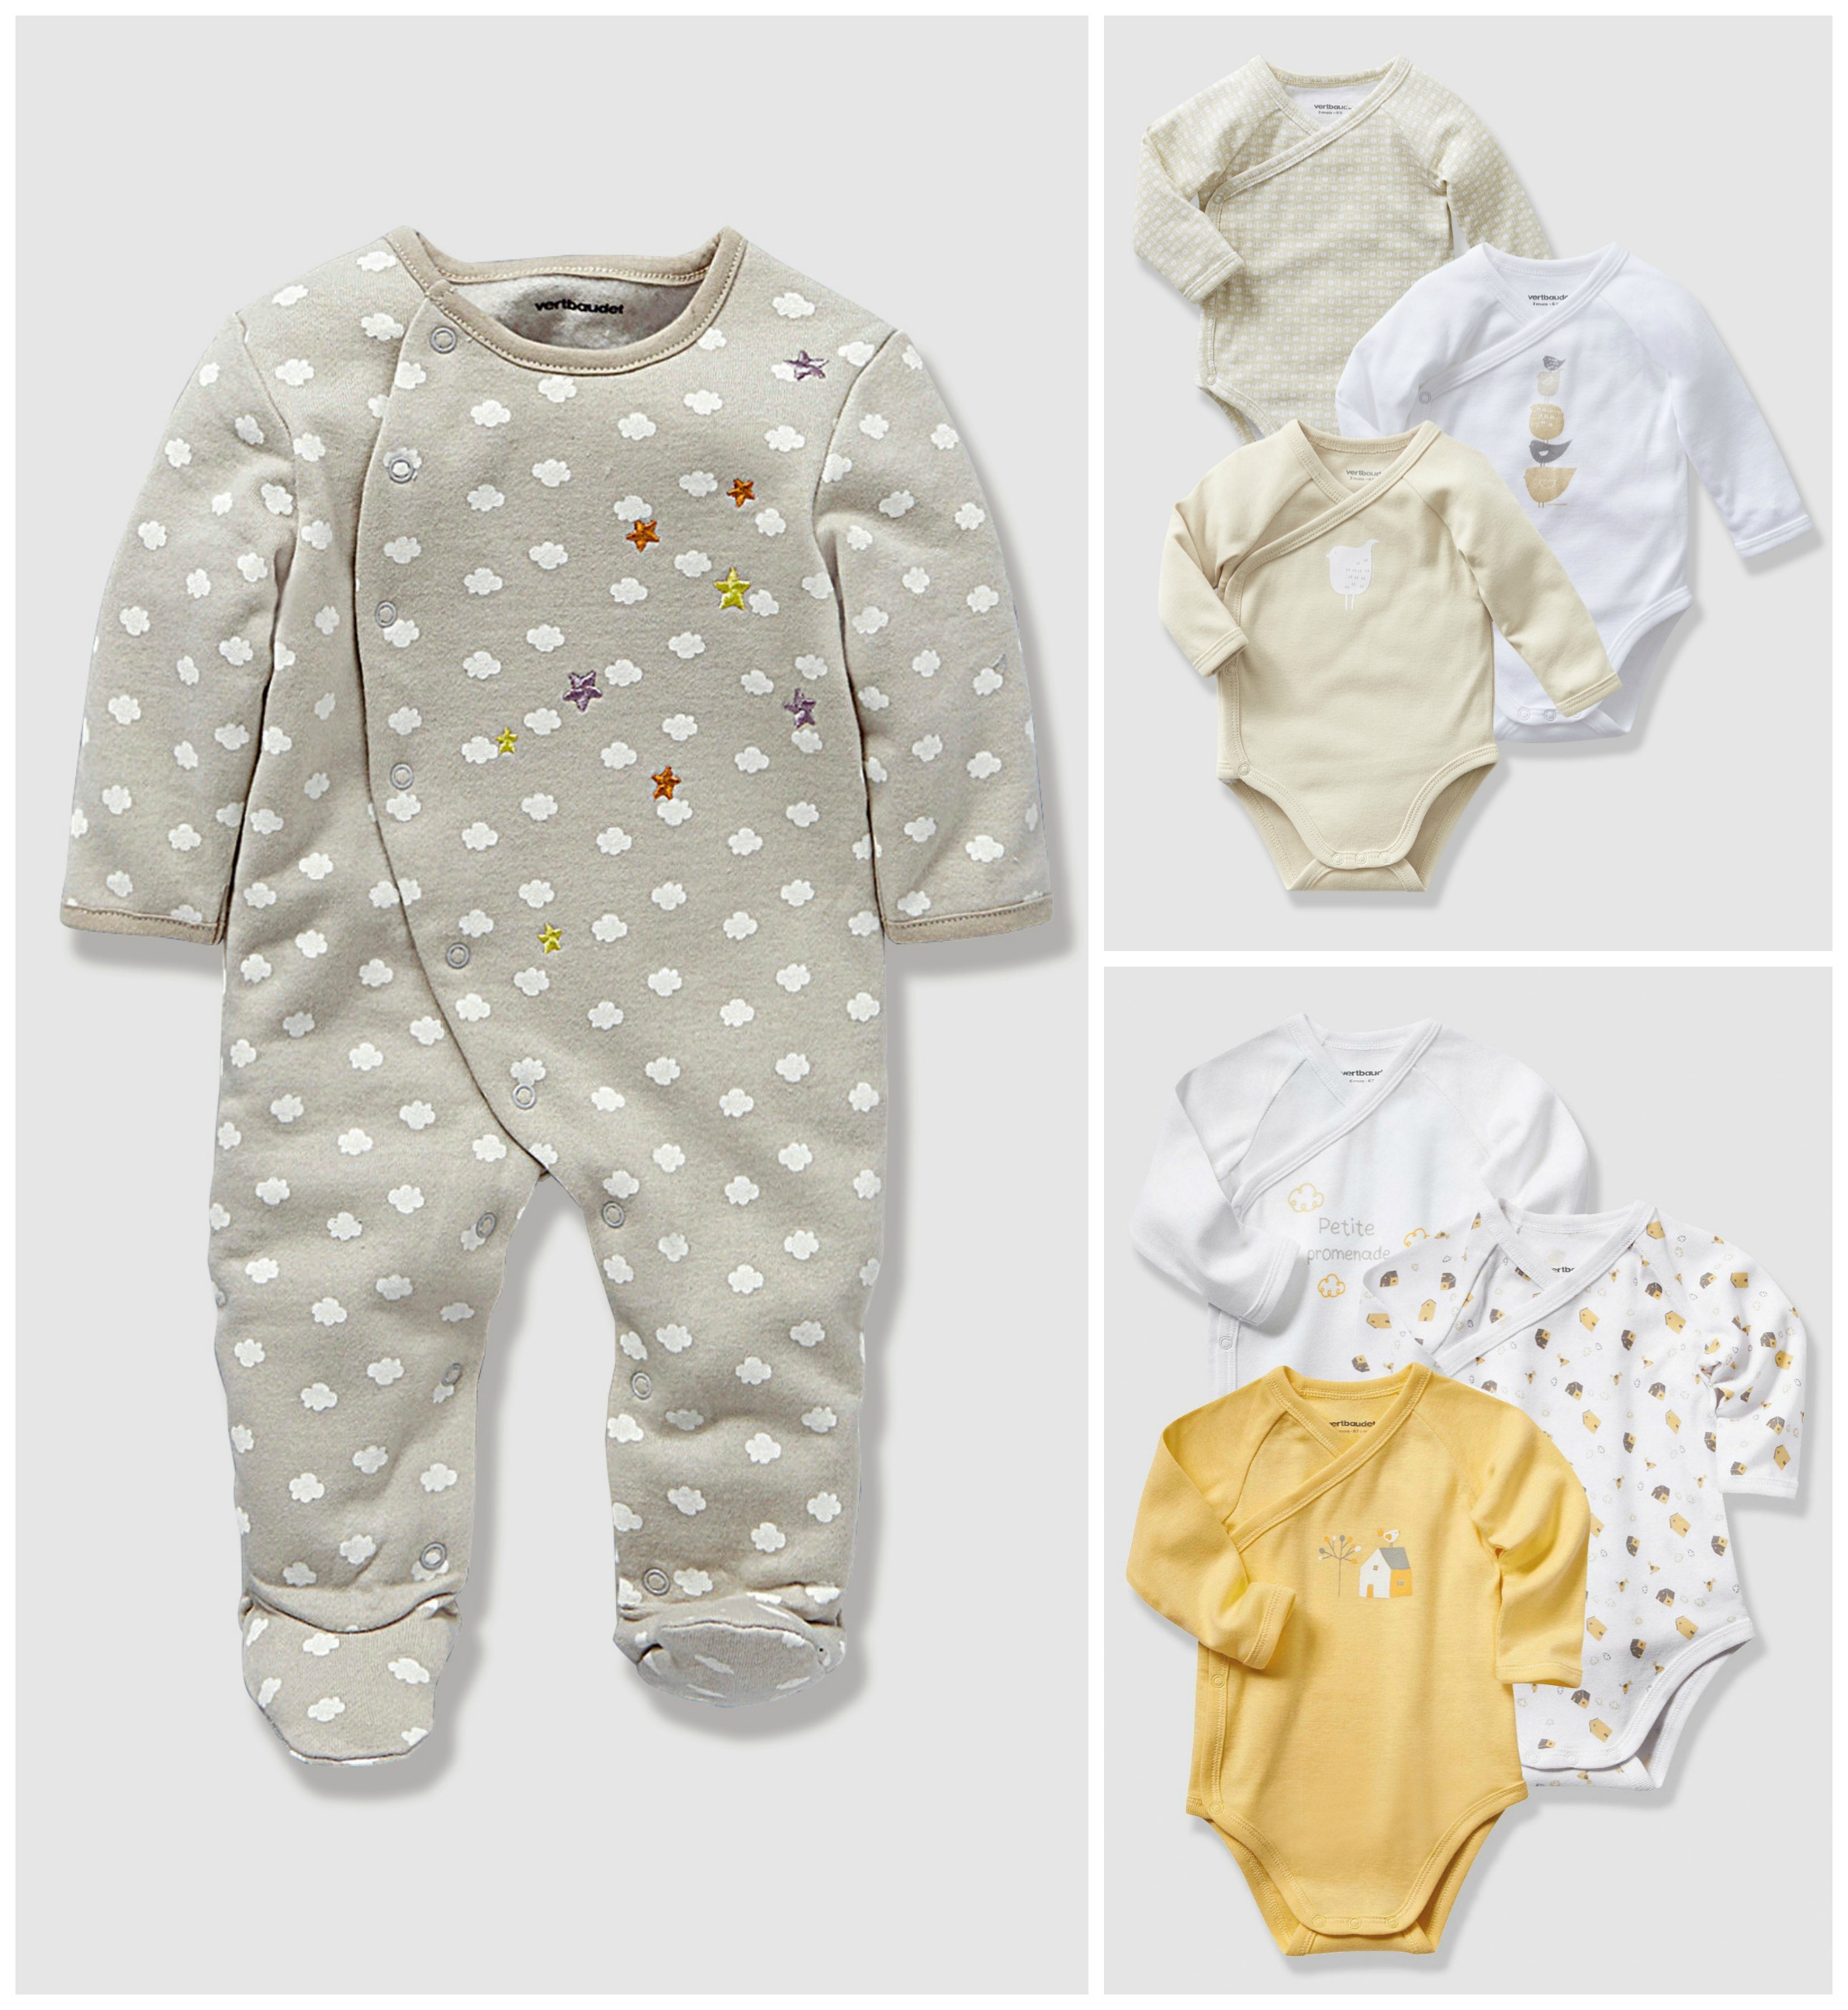 You searched for: unisex baby clothes! Etsy is the home to thousands of handmade, vintage, and one-of-a-kind products and gifts related to your search. No matter what you're looking for or where you are in the world, our global marketplace of sellers can help you .